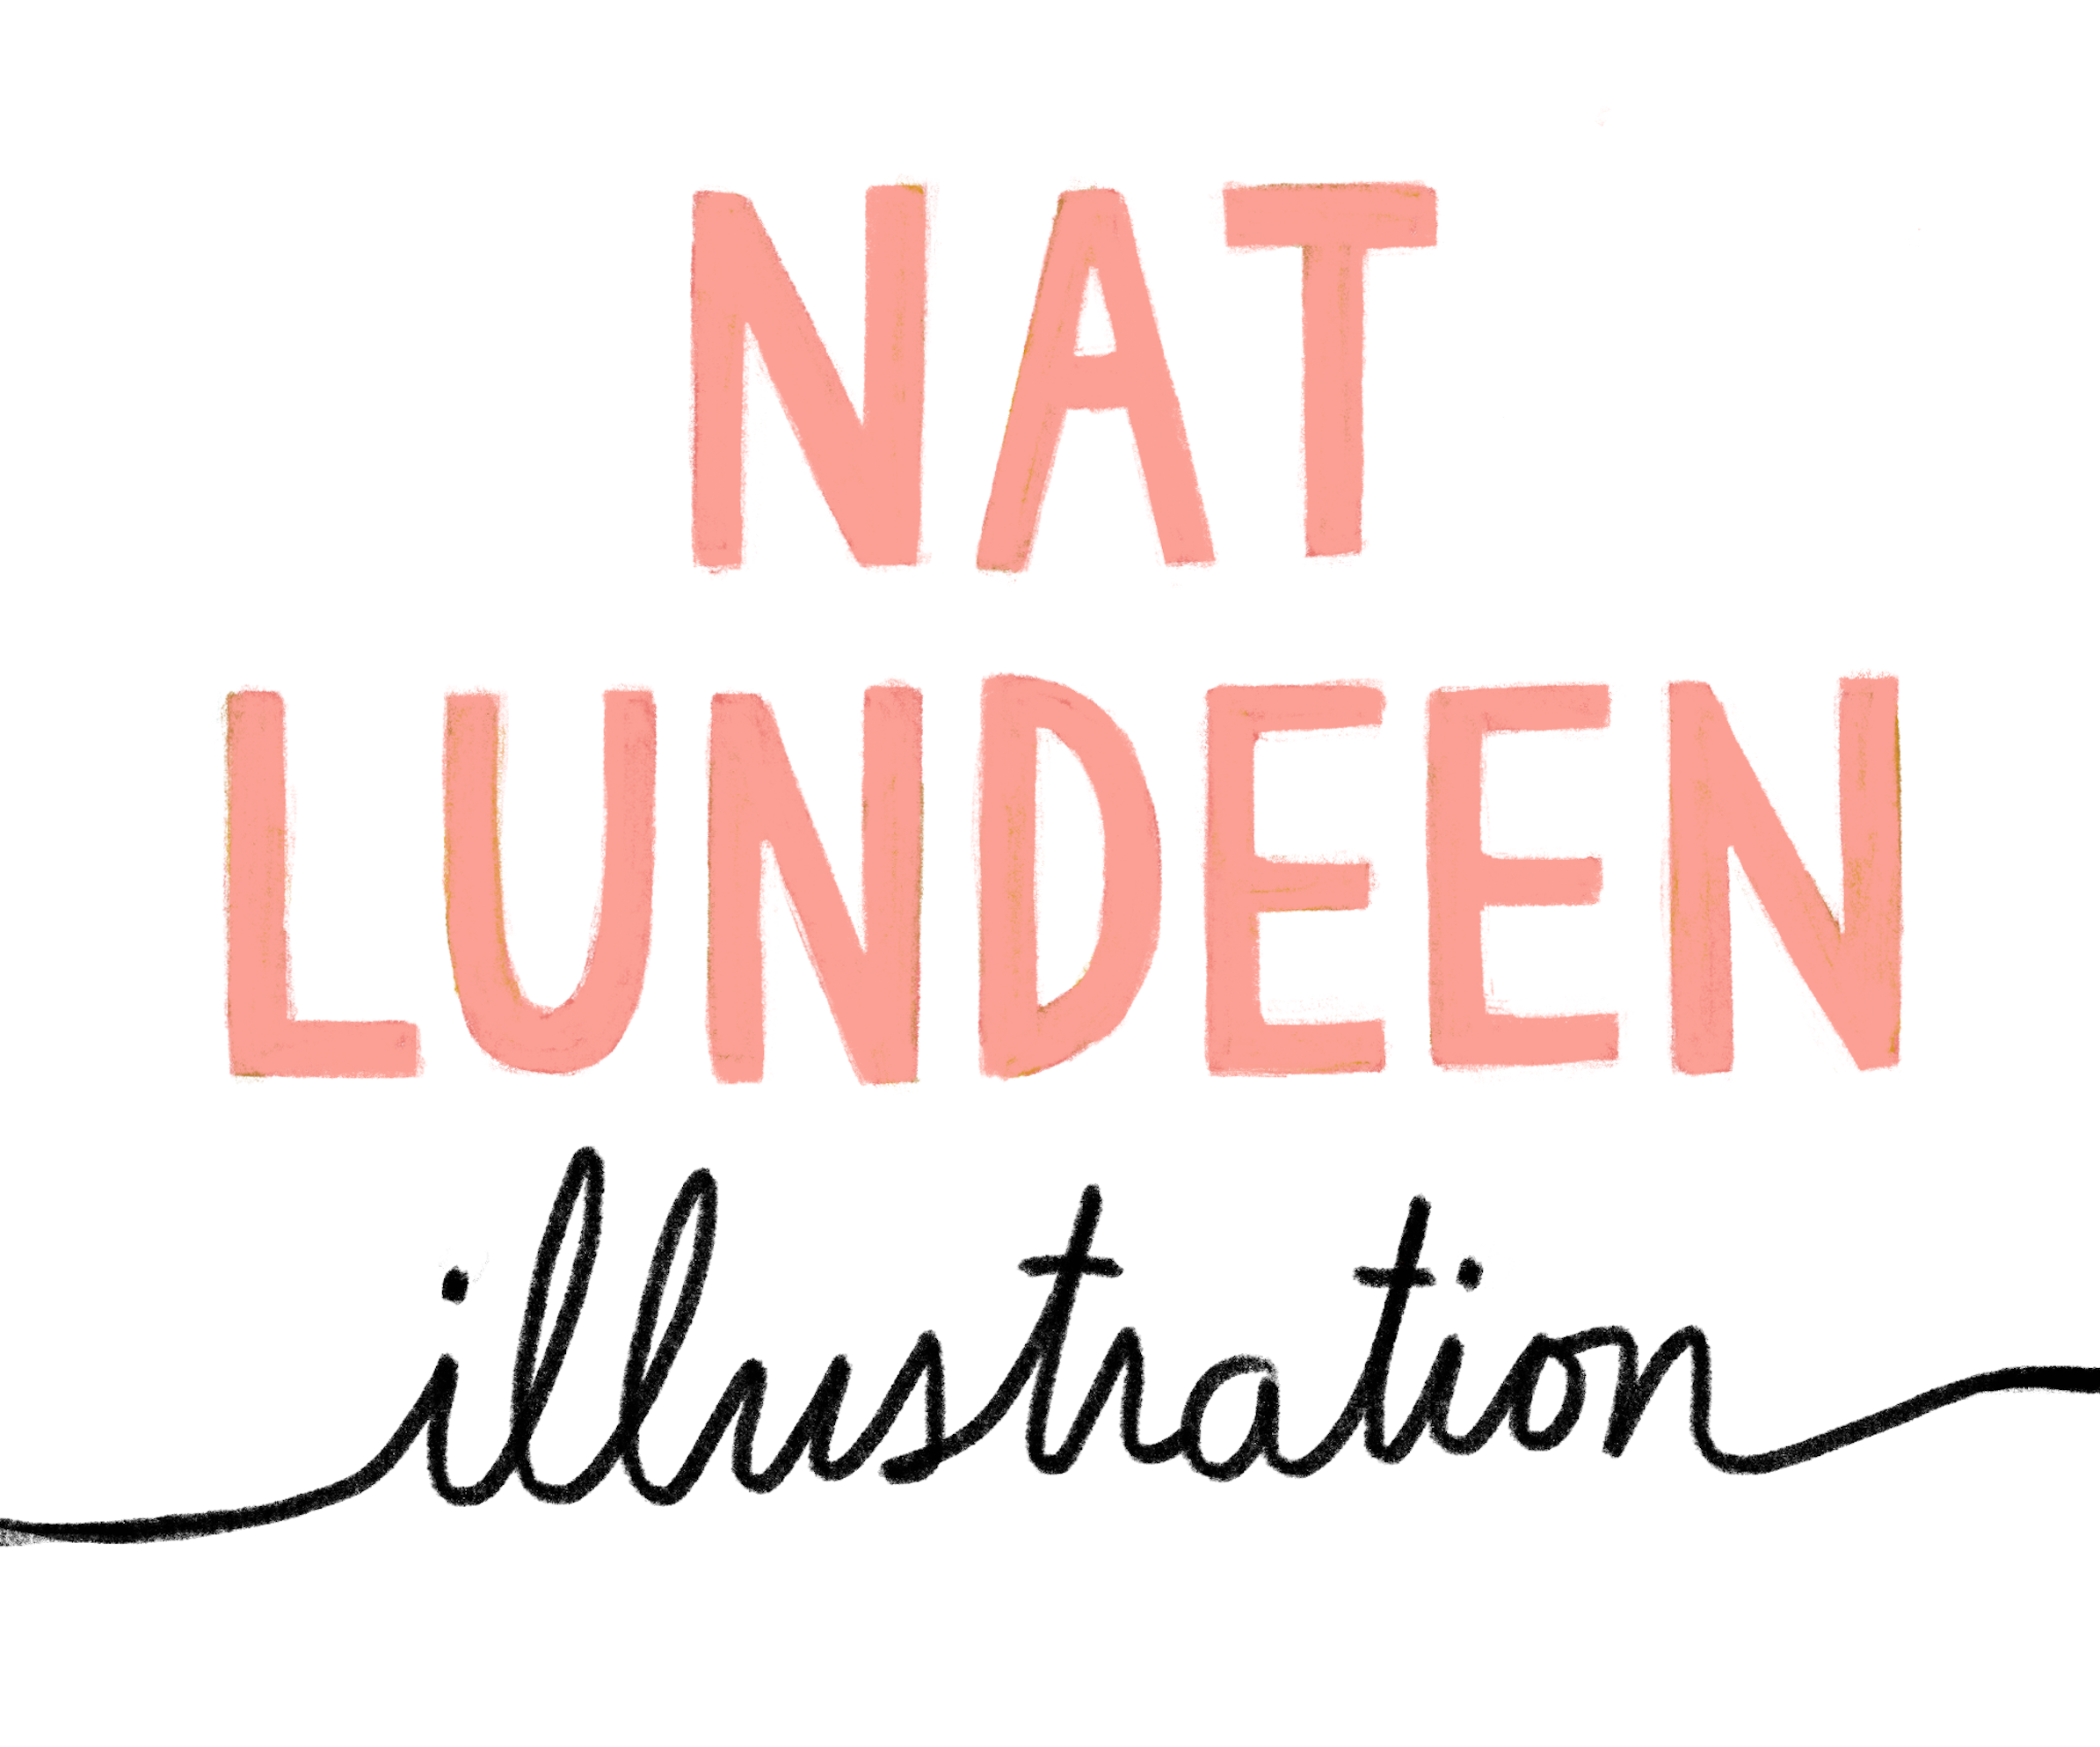 Natalie Lundeen Illustration